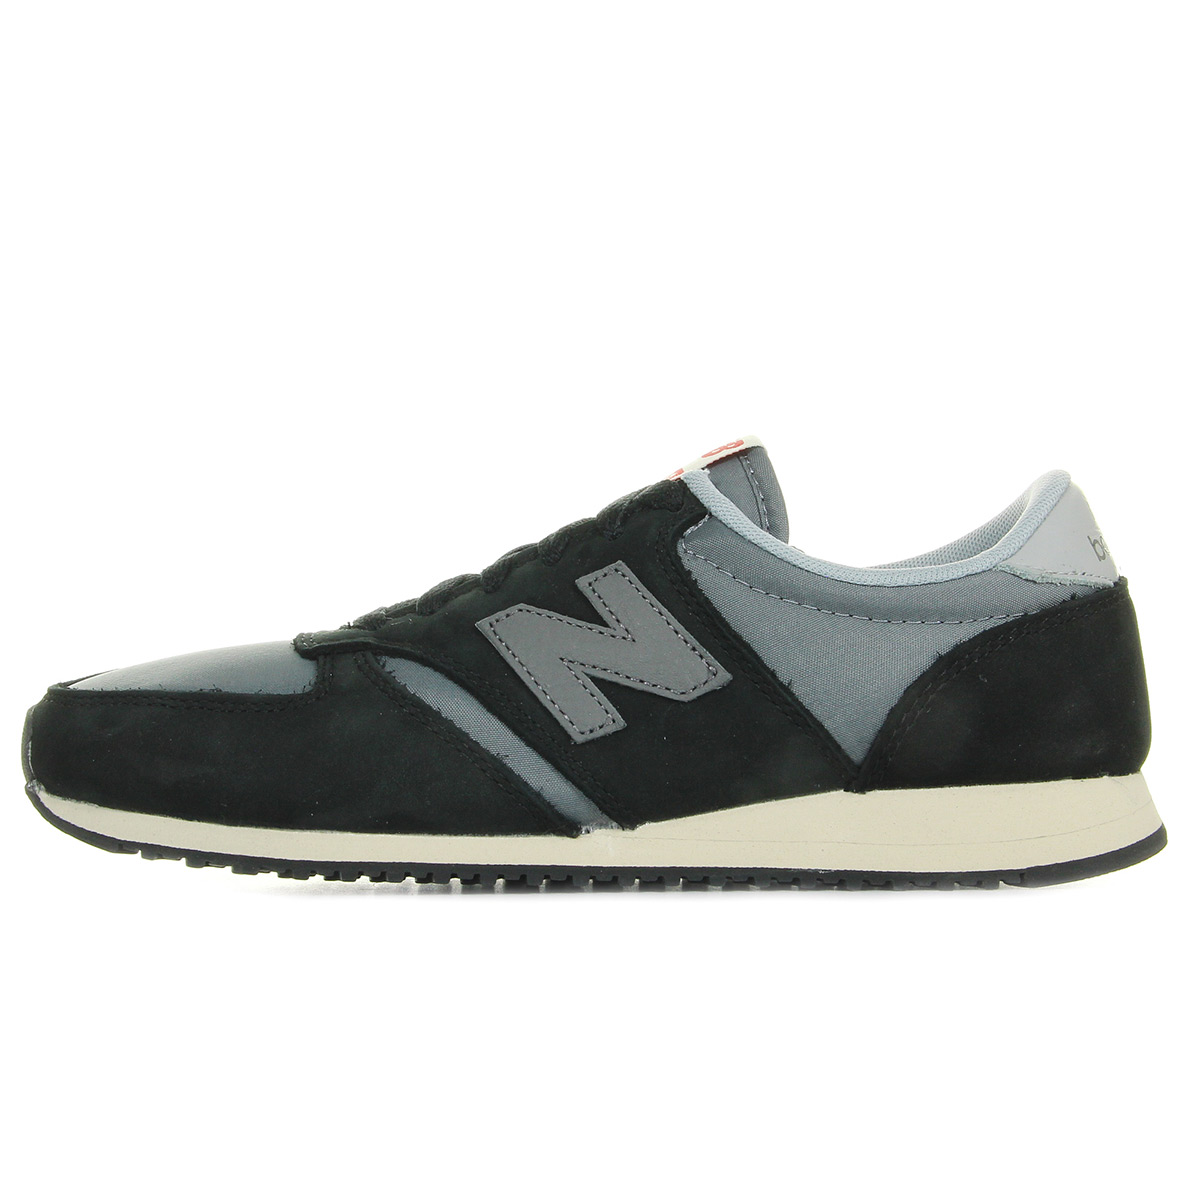 new balance camel homme meaning in english